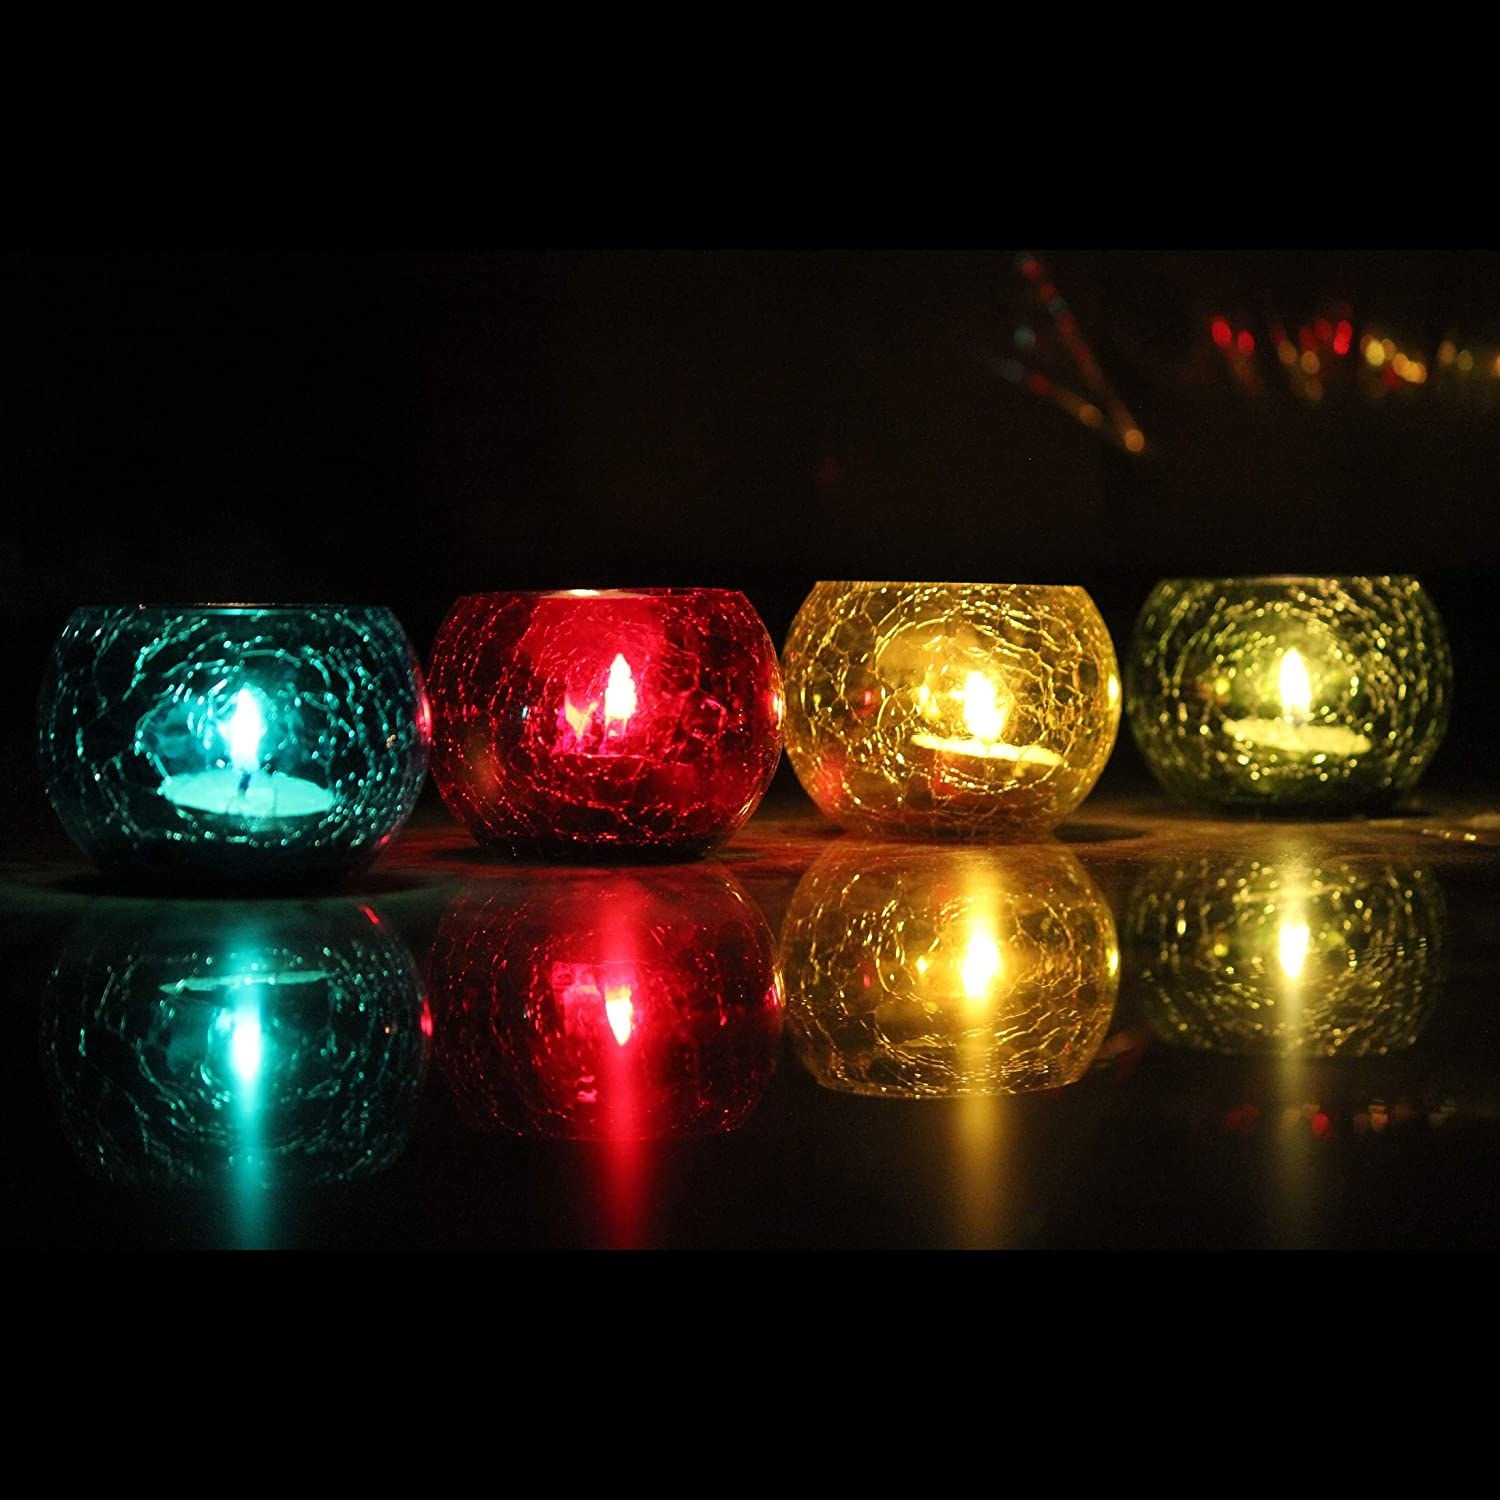 Crackled glass candle holders in blue, red, yellow, and green.